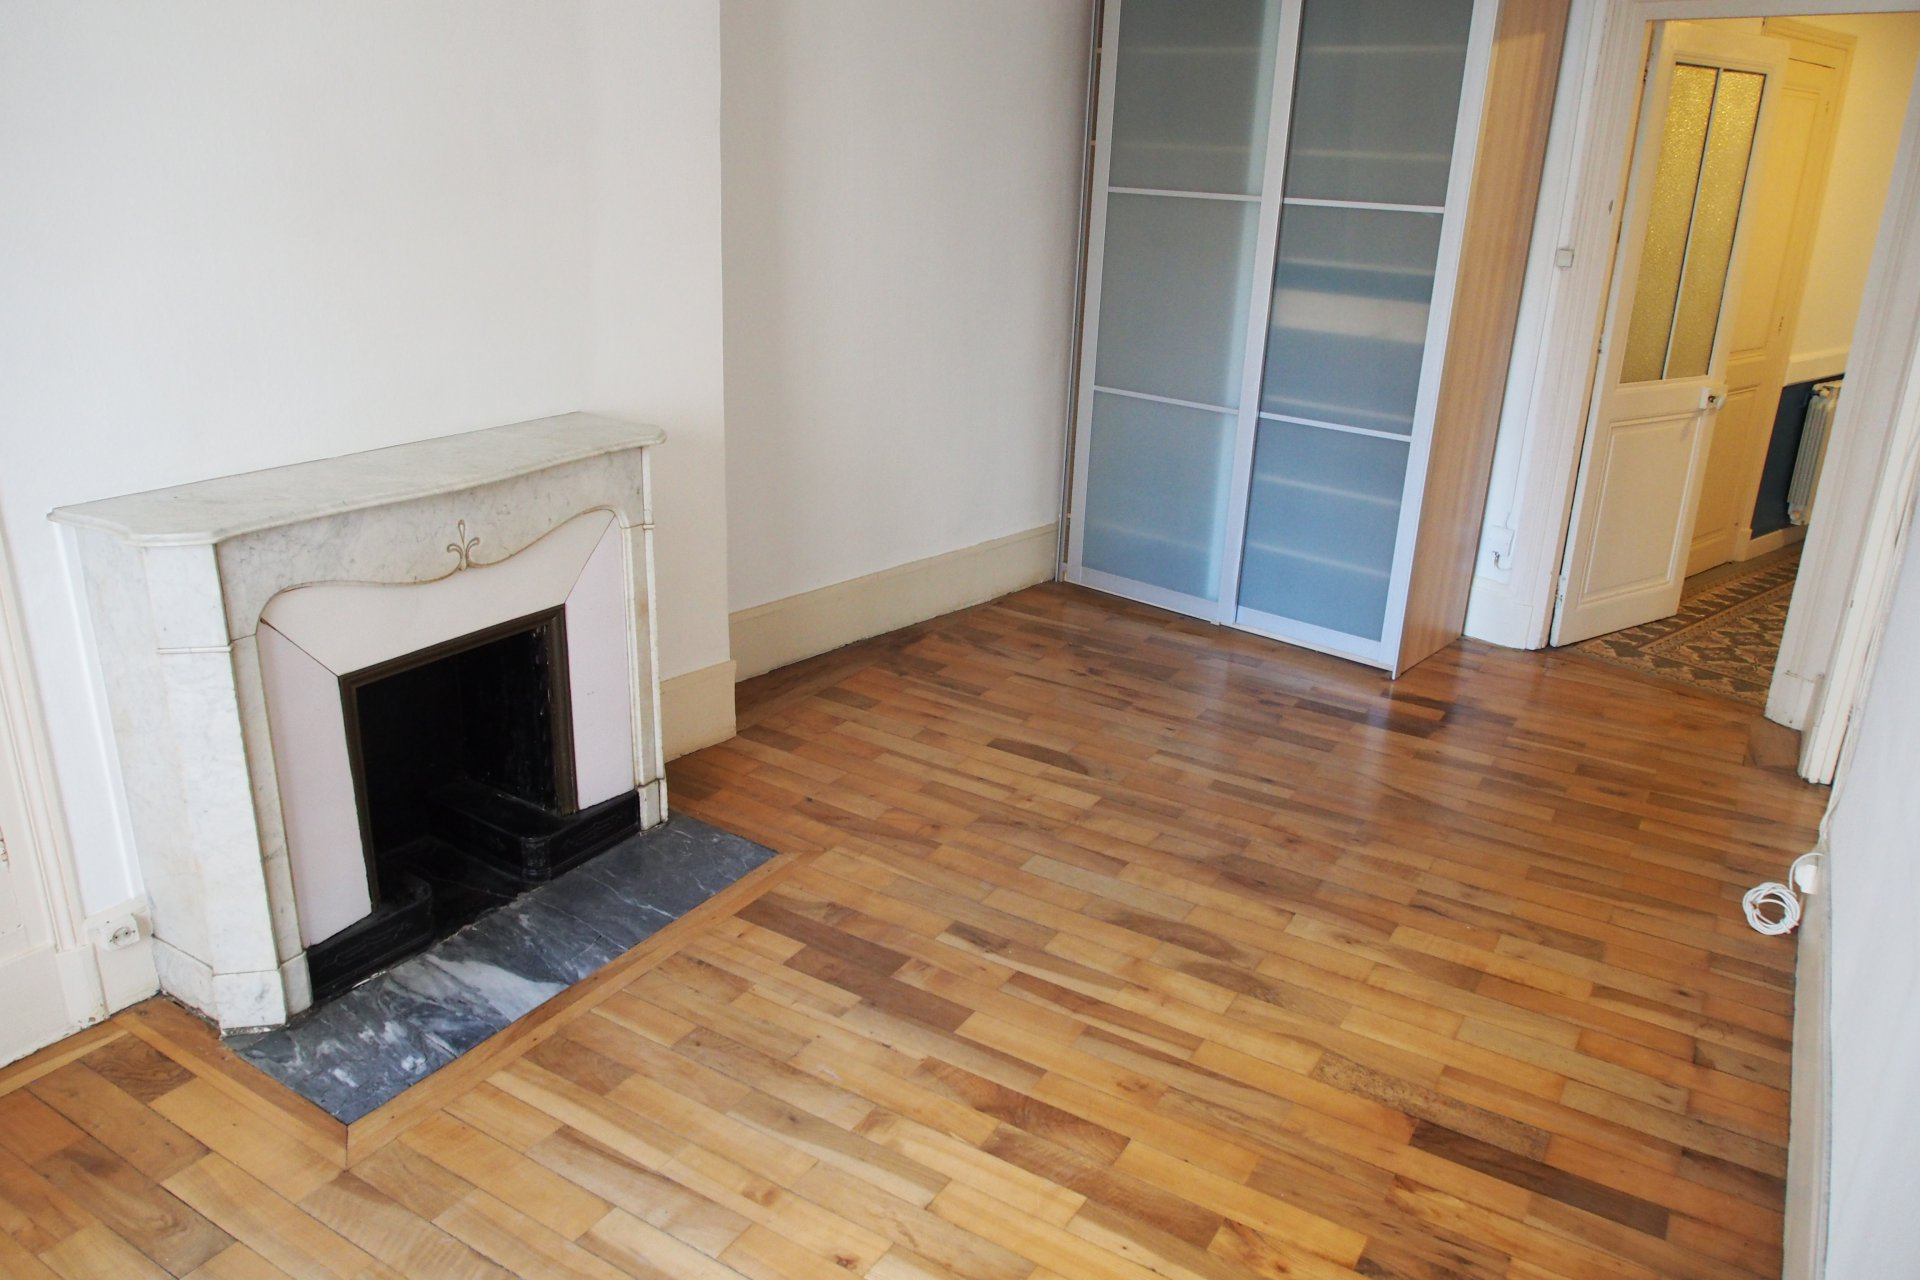 Large 60.11m², one bedroom apartment in central Grenoble